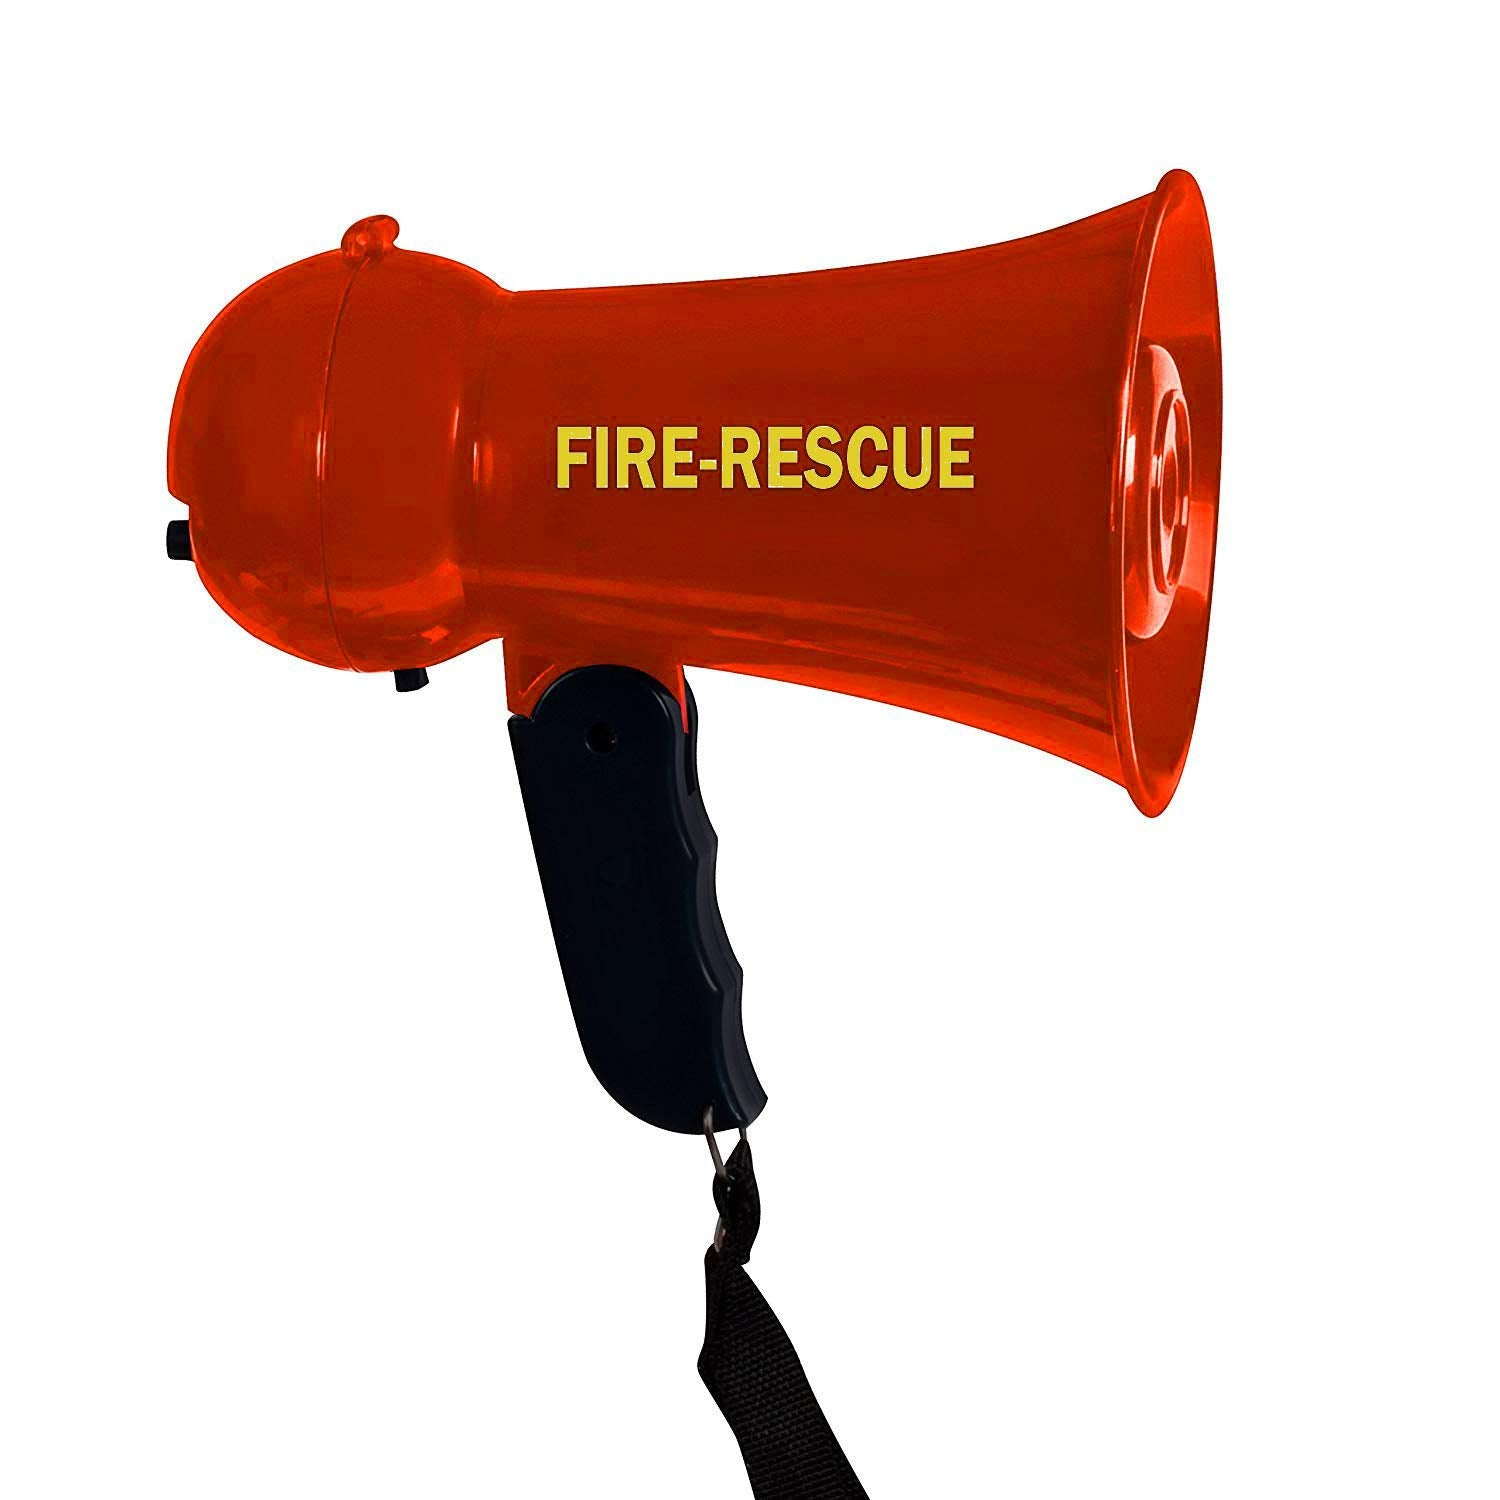 IQ Toys Pretend Play Kids Fire Rescue Megaphone with Siren Sound